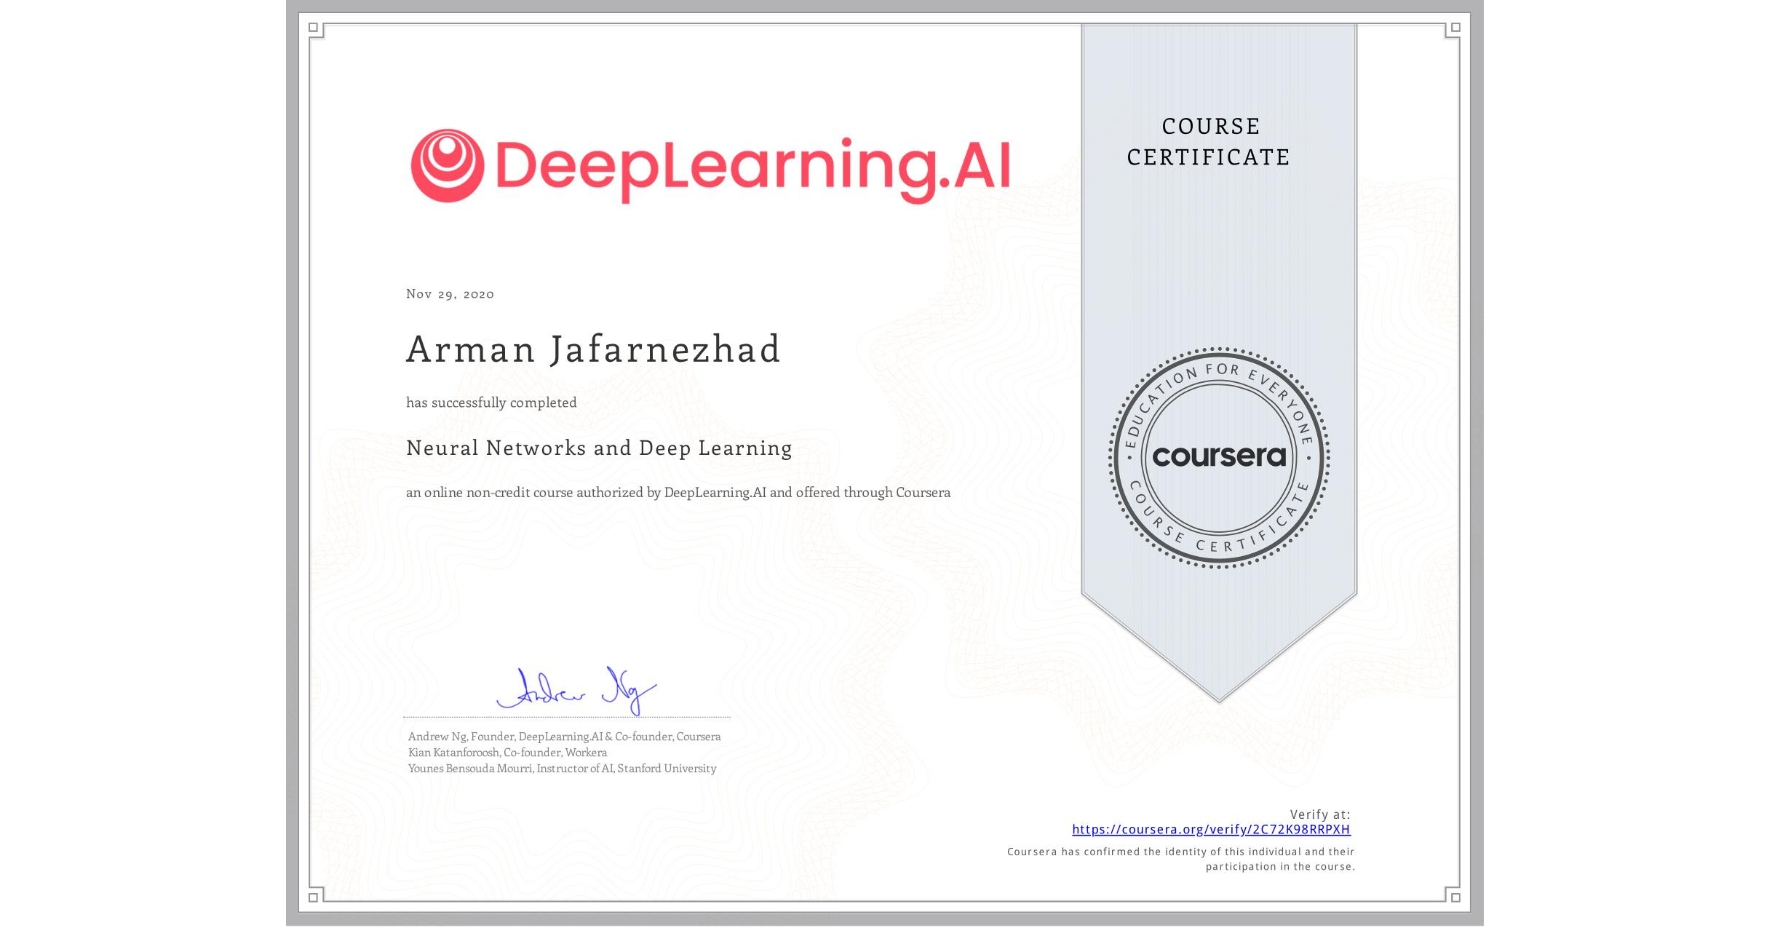 View certificate for Arman Jafarnezhad, Neural Networks and Deep Learning, an online non-credit course authorized by DeepLearning.AI and offered through Coursera